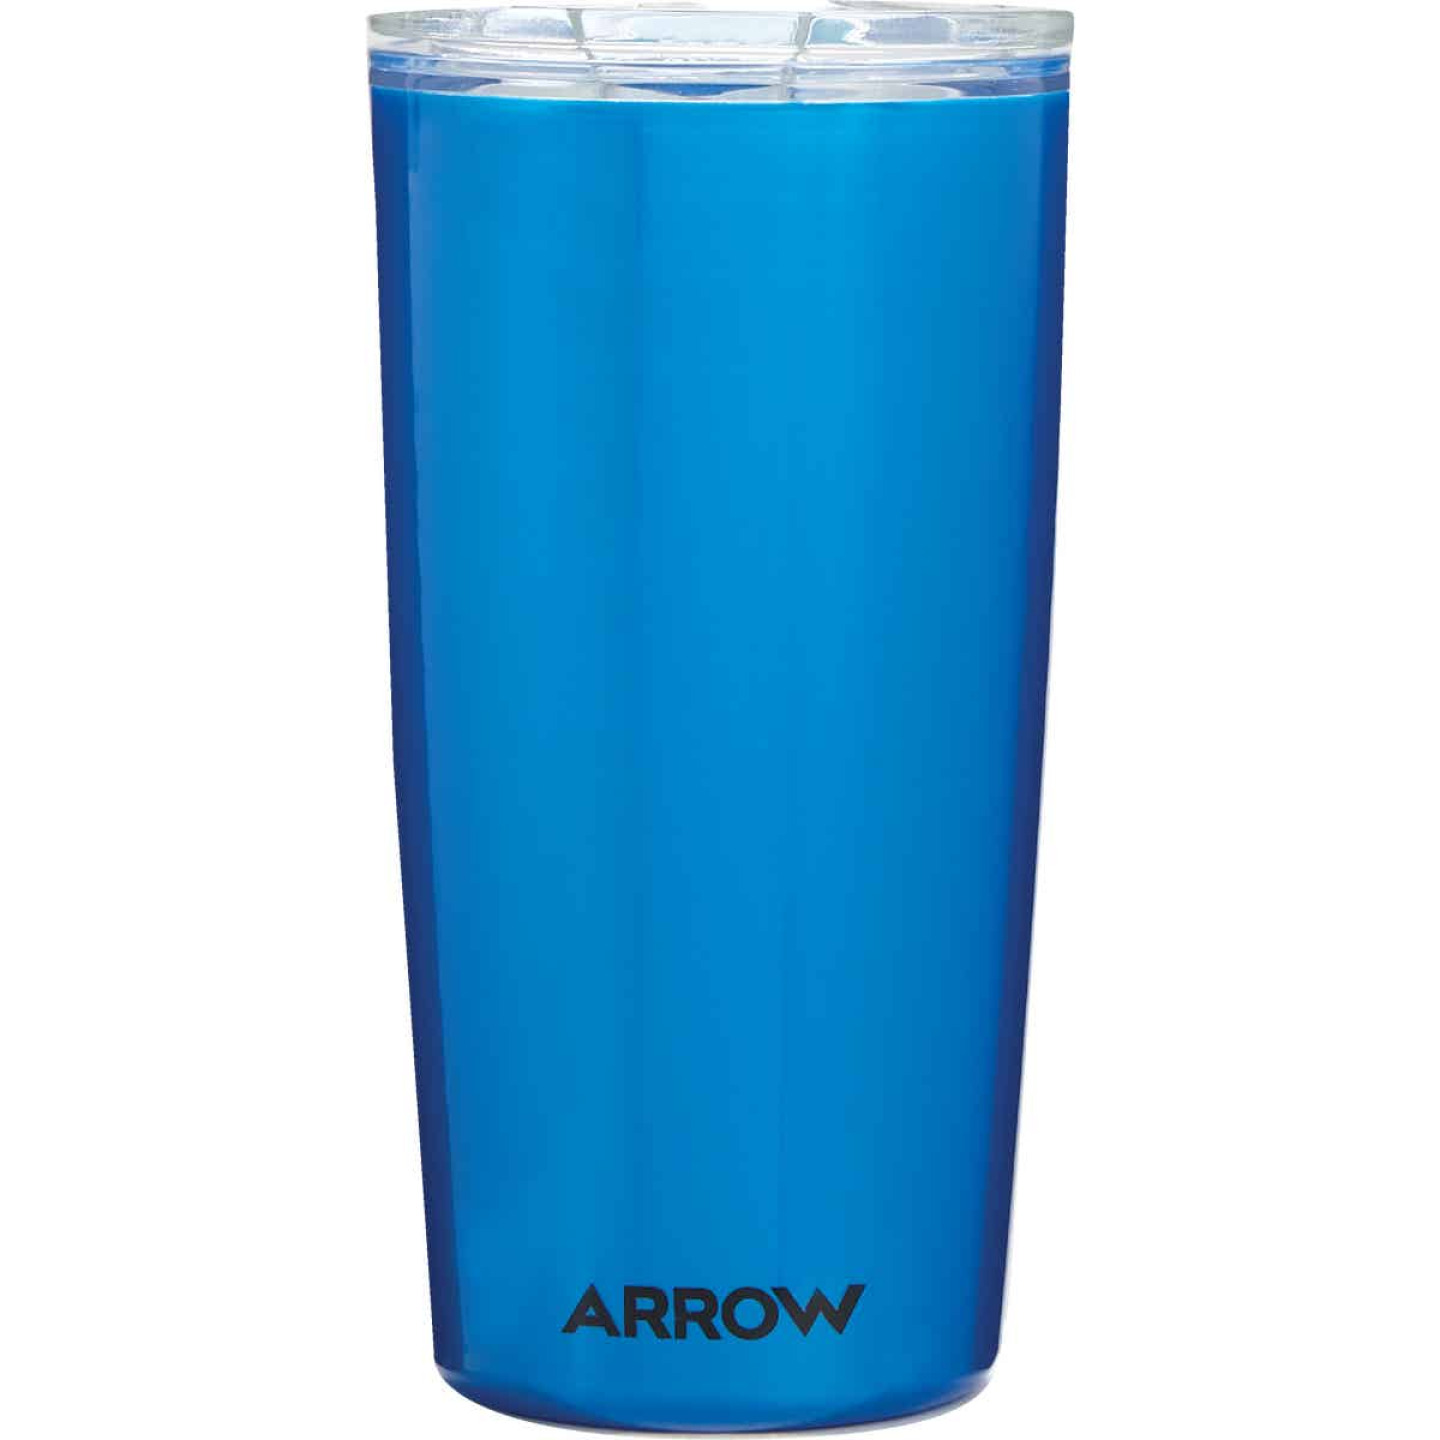 Arrow 18 Oz. Insulated Tumbler with Lid Image 1